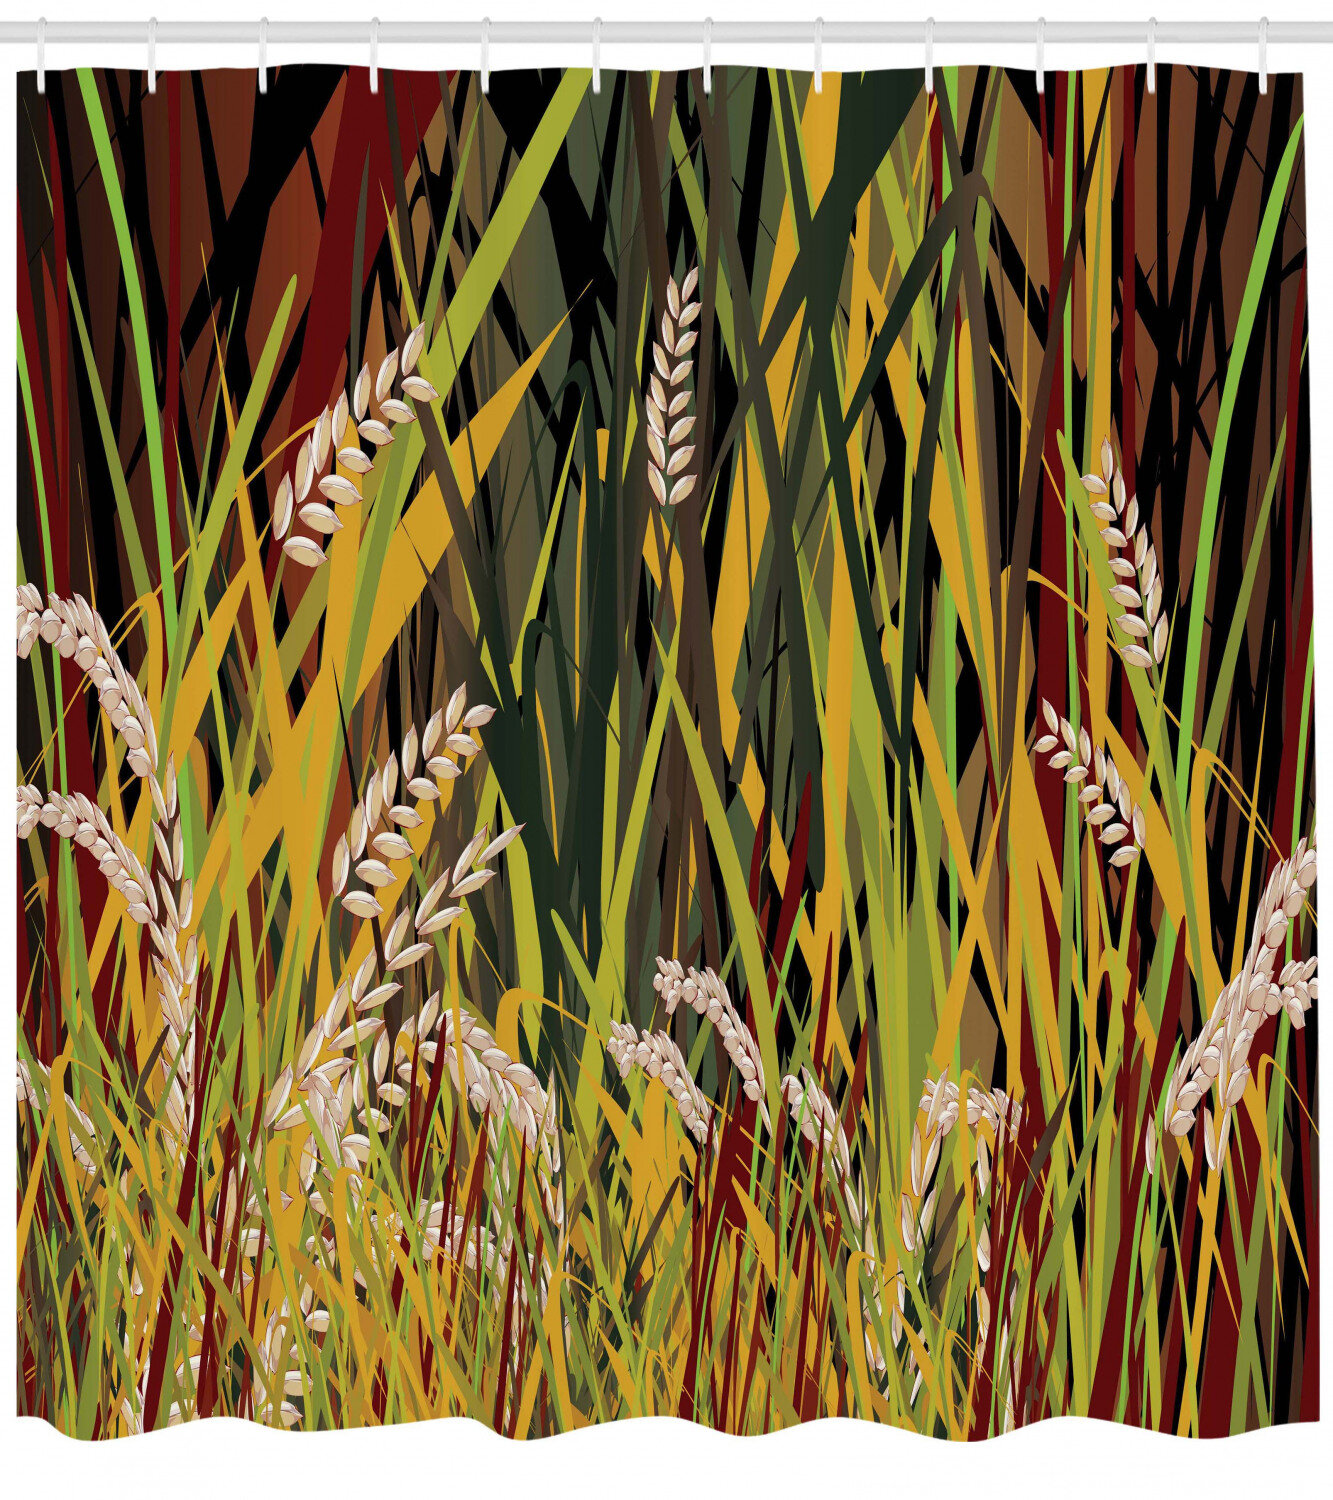 Reeds Dried Leaves Wheat River Wild Plant Forest Farm Country Life Art Print Image Background for Baby Birthday Party Wedding Vinyl Studio Props Photography Nature 10x15 FT Photography Backdrop